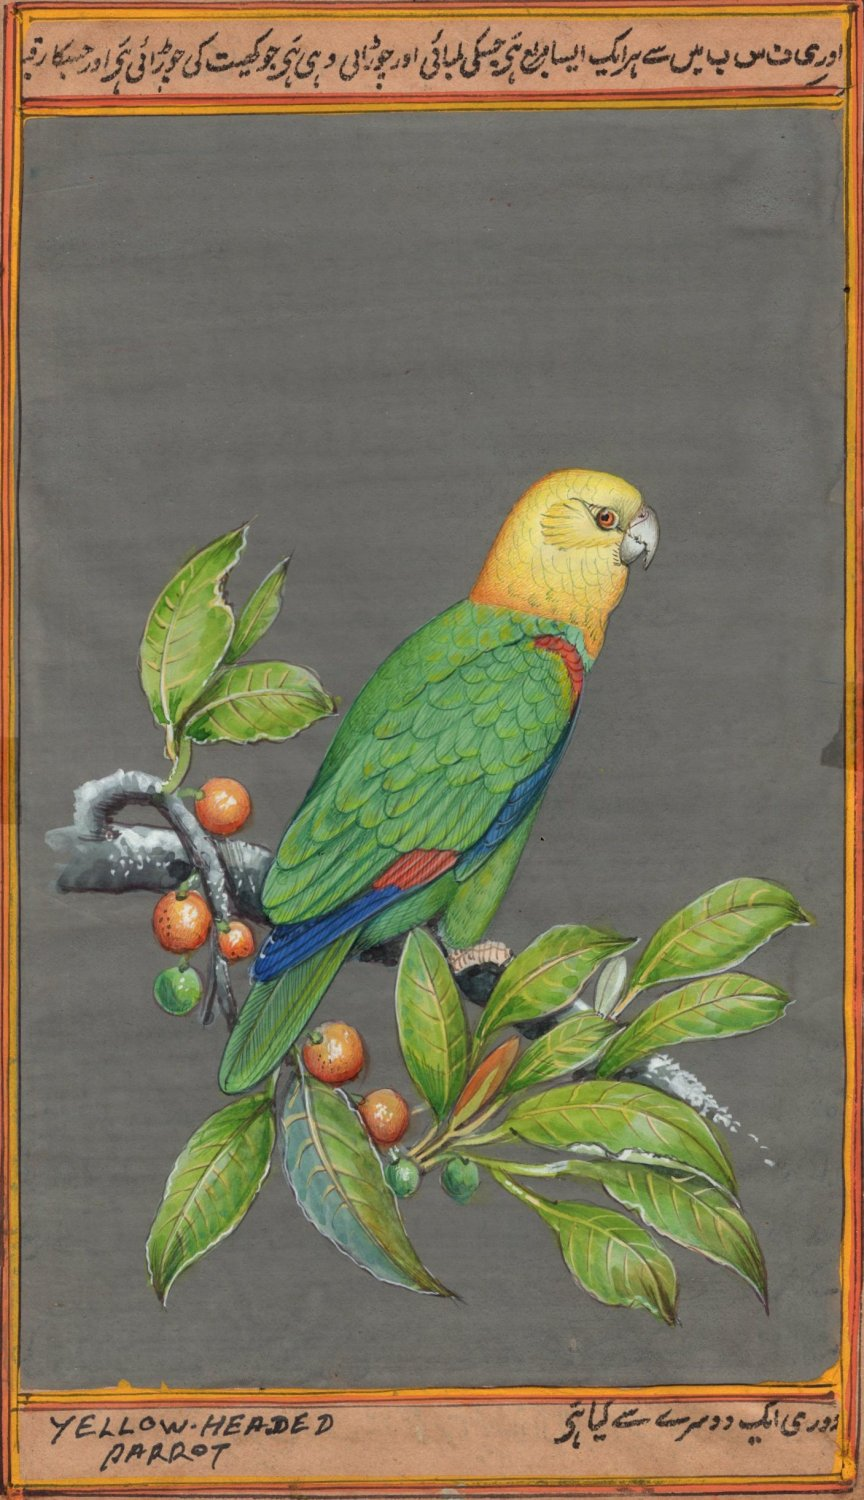 Yellow Headed Parrot Painting Handmade Indian Miniature Nature Amazon Bird Art